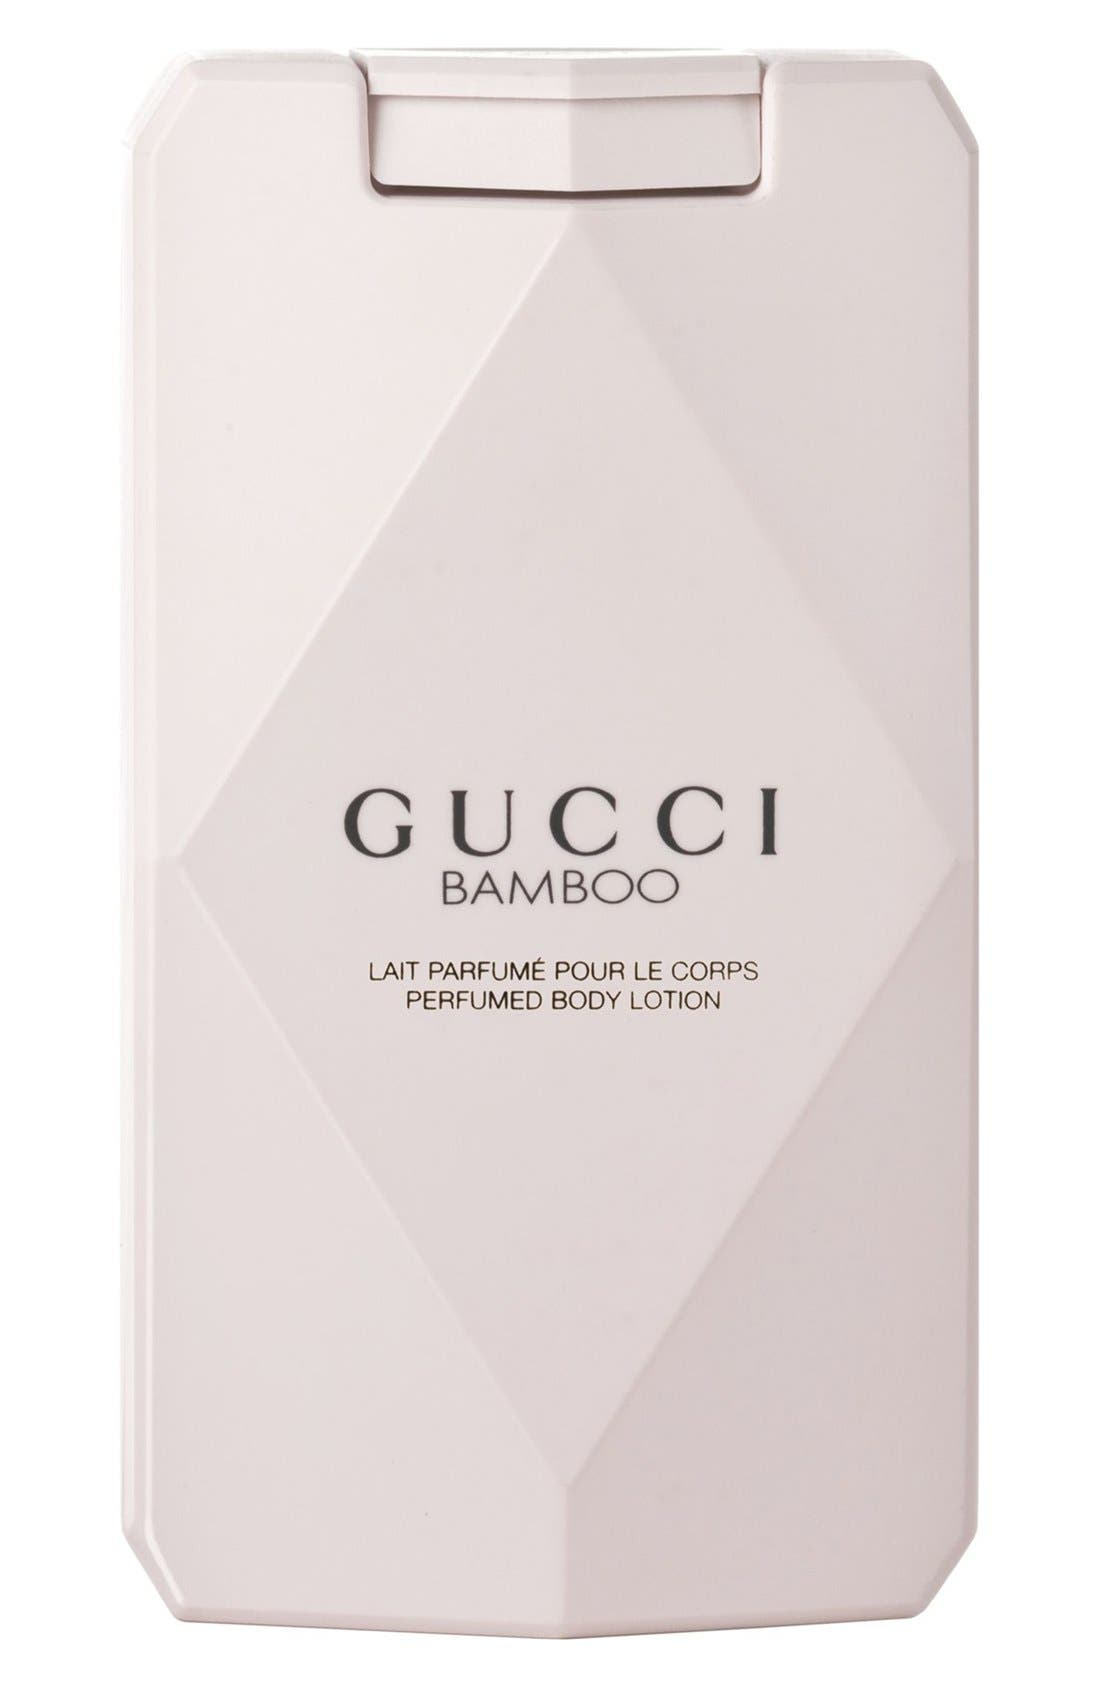 Gucci 'Bamboo' Body Lotion